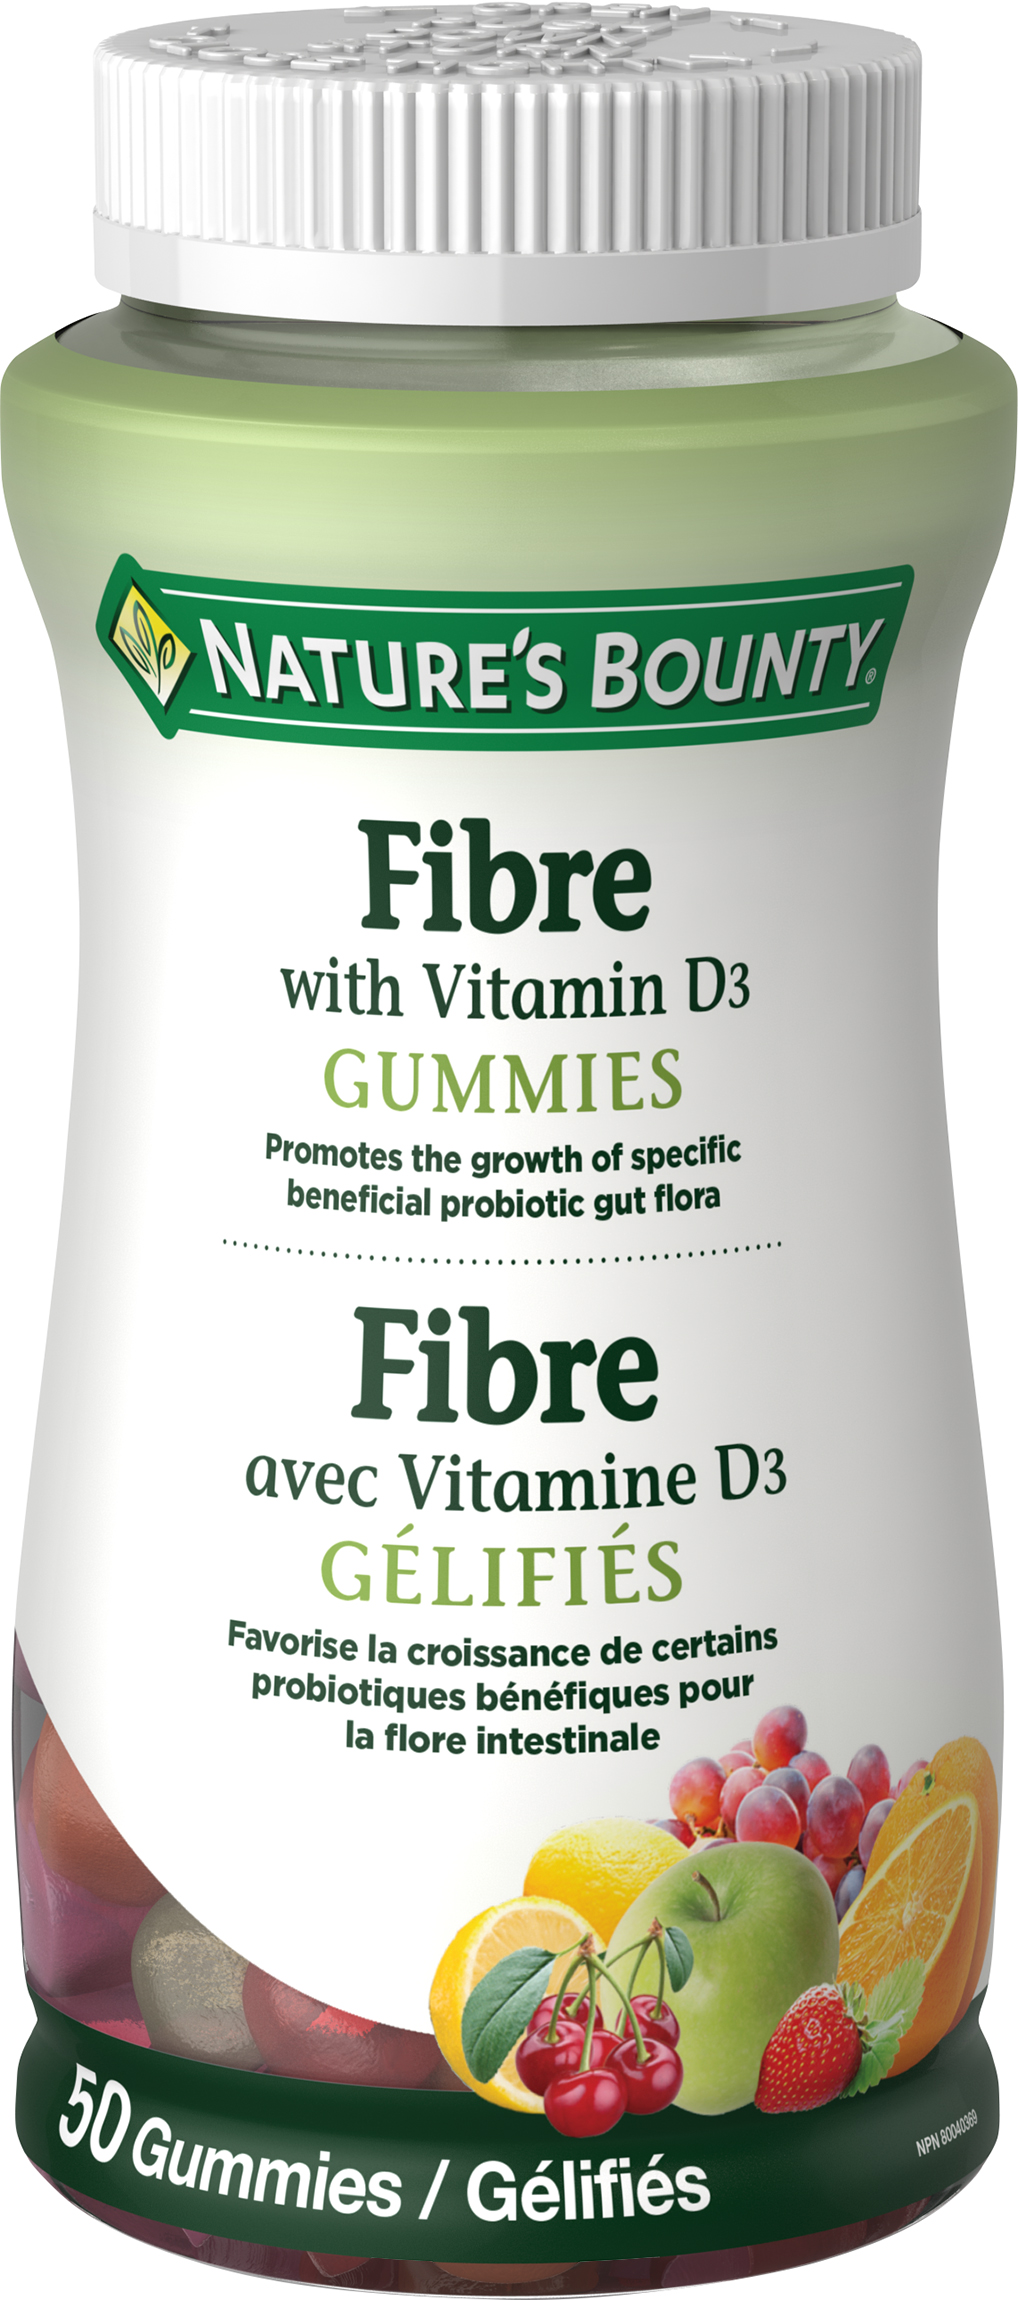 Fibre with Vitamin D3 Gummies